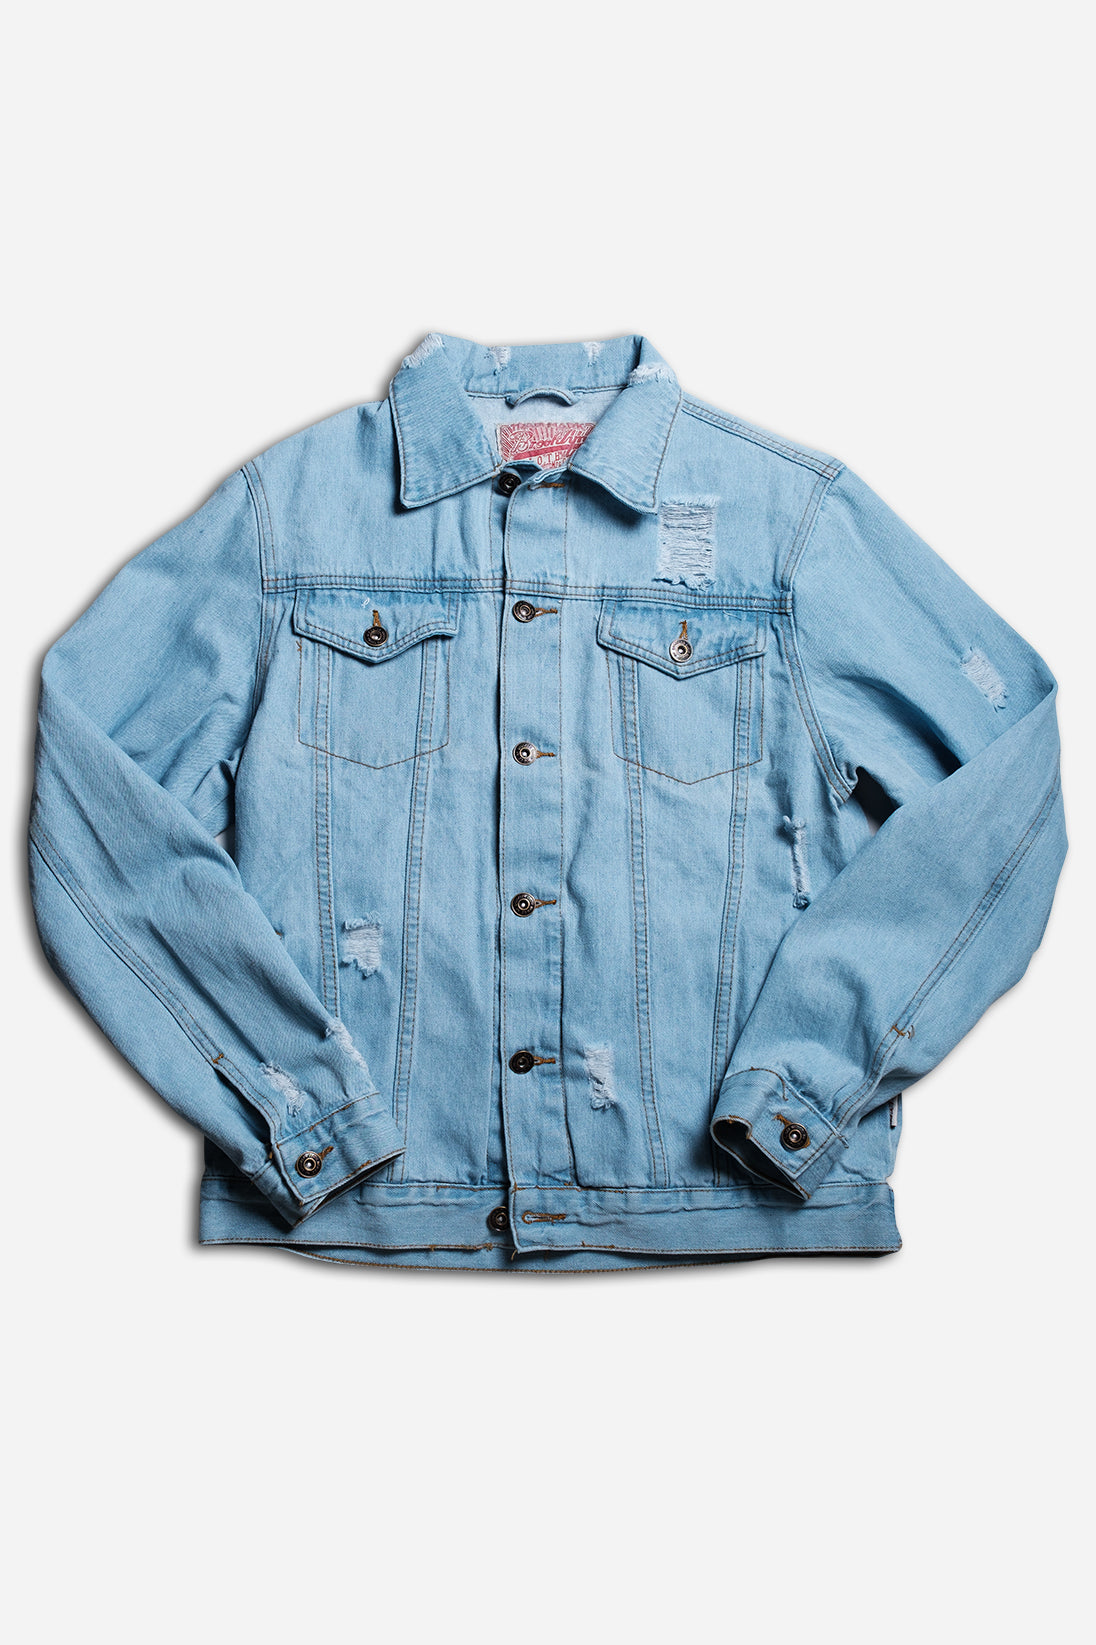 LIGHT WASH DISTRESSED DENIM JACKET by Brooklyn Cloth